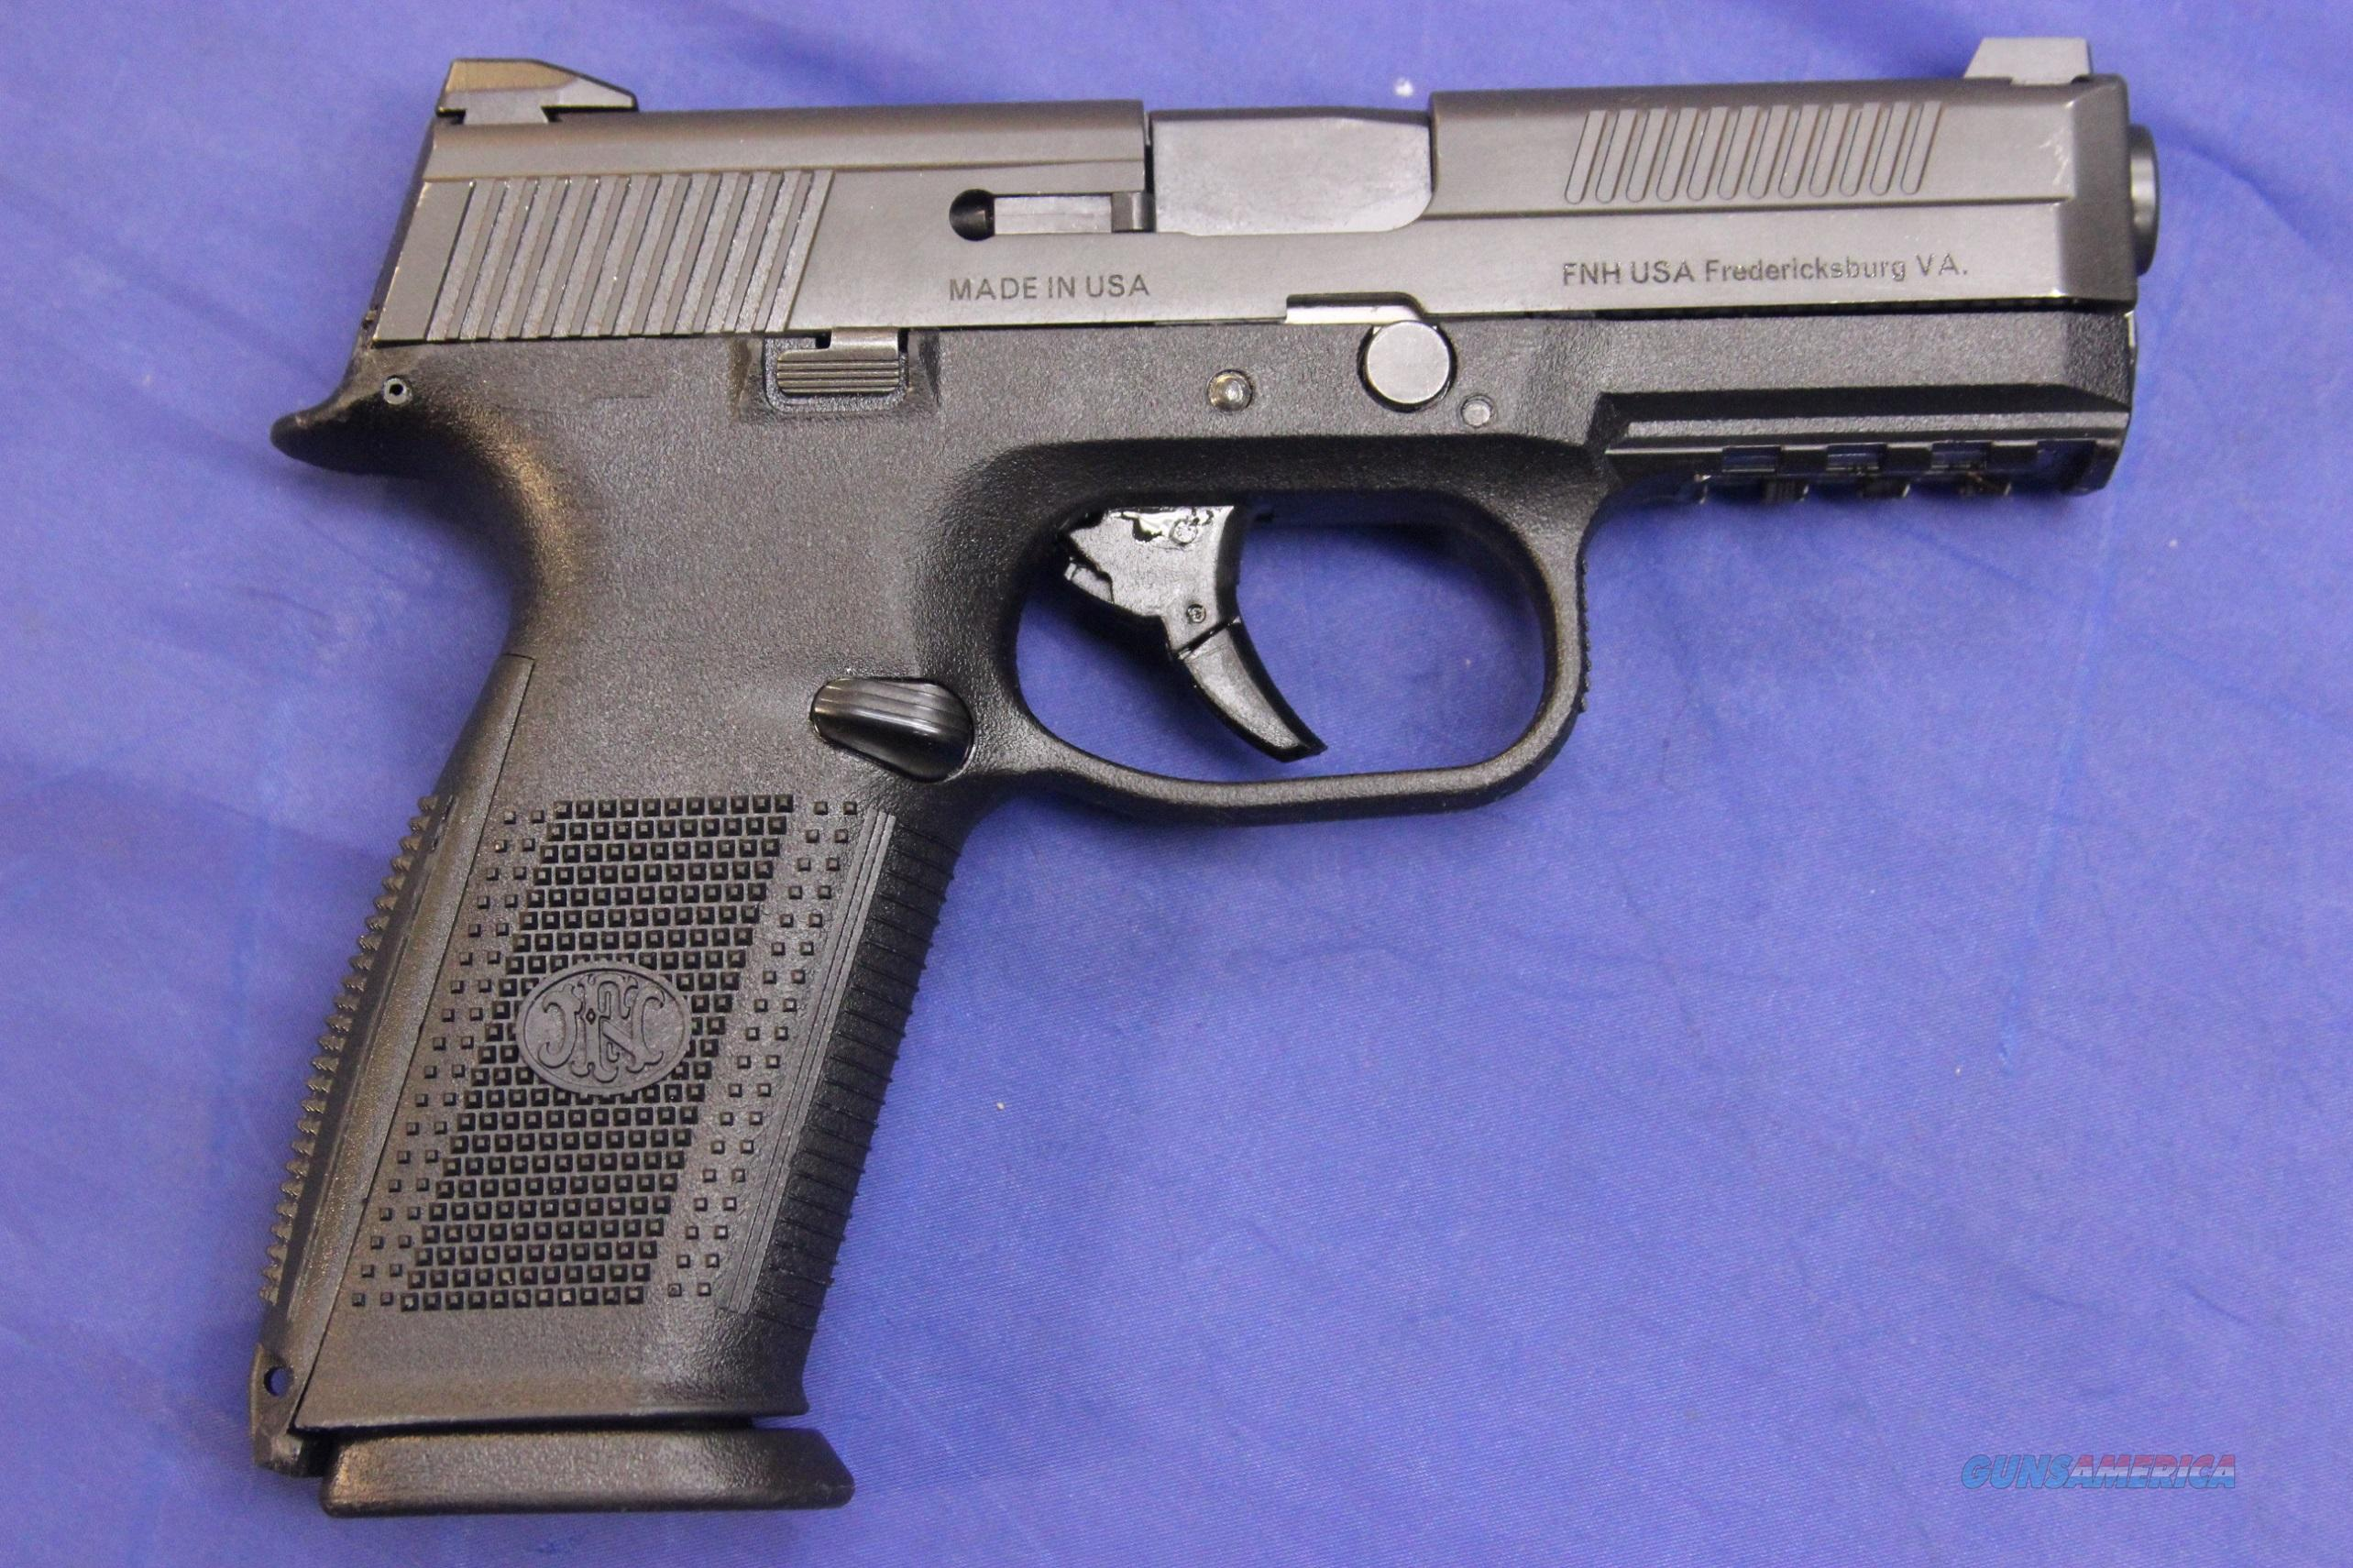 FNH FNS-40 w/ BOX & ACCESSORIES (RANGE GUN)  Guns > Pistols > FNH - Fabrique Nationale (FN) Pistols > FNP